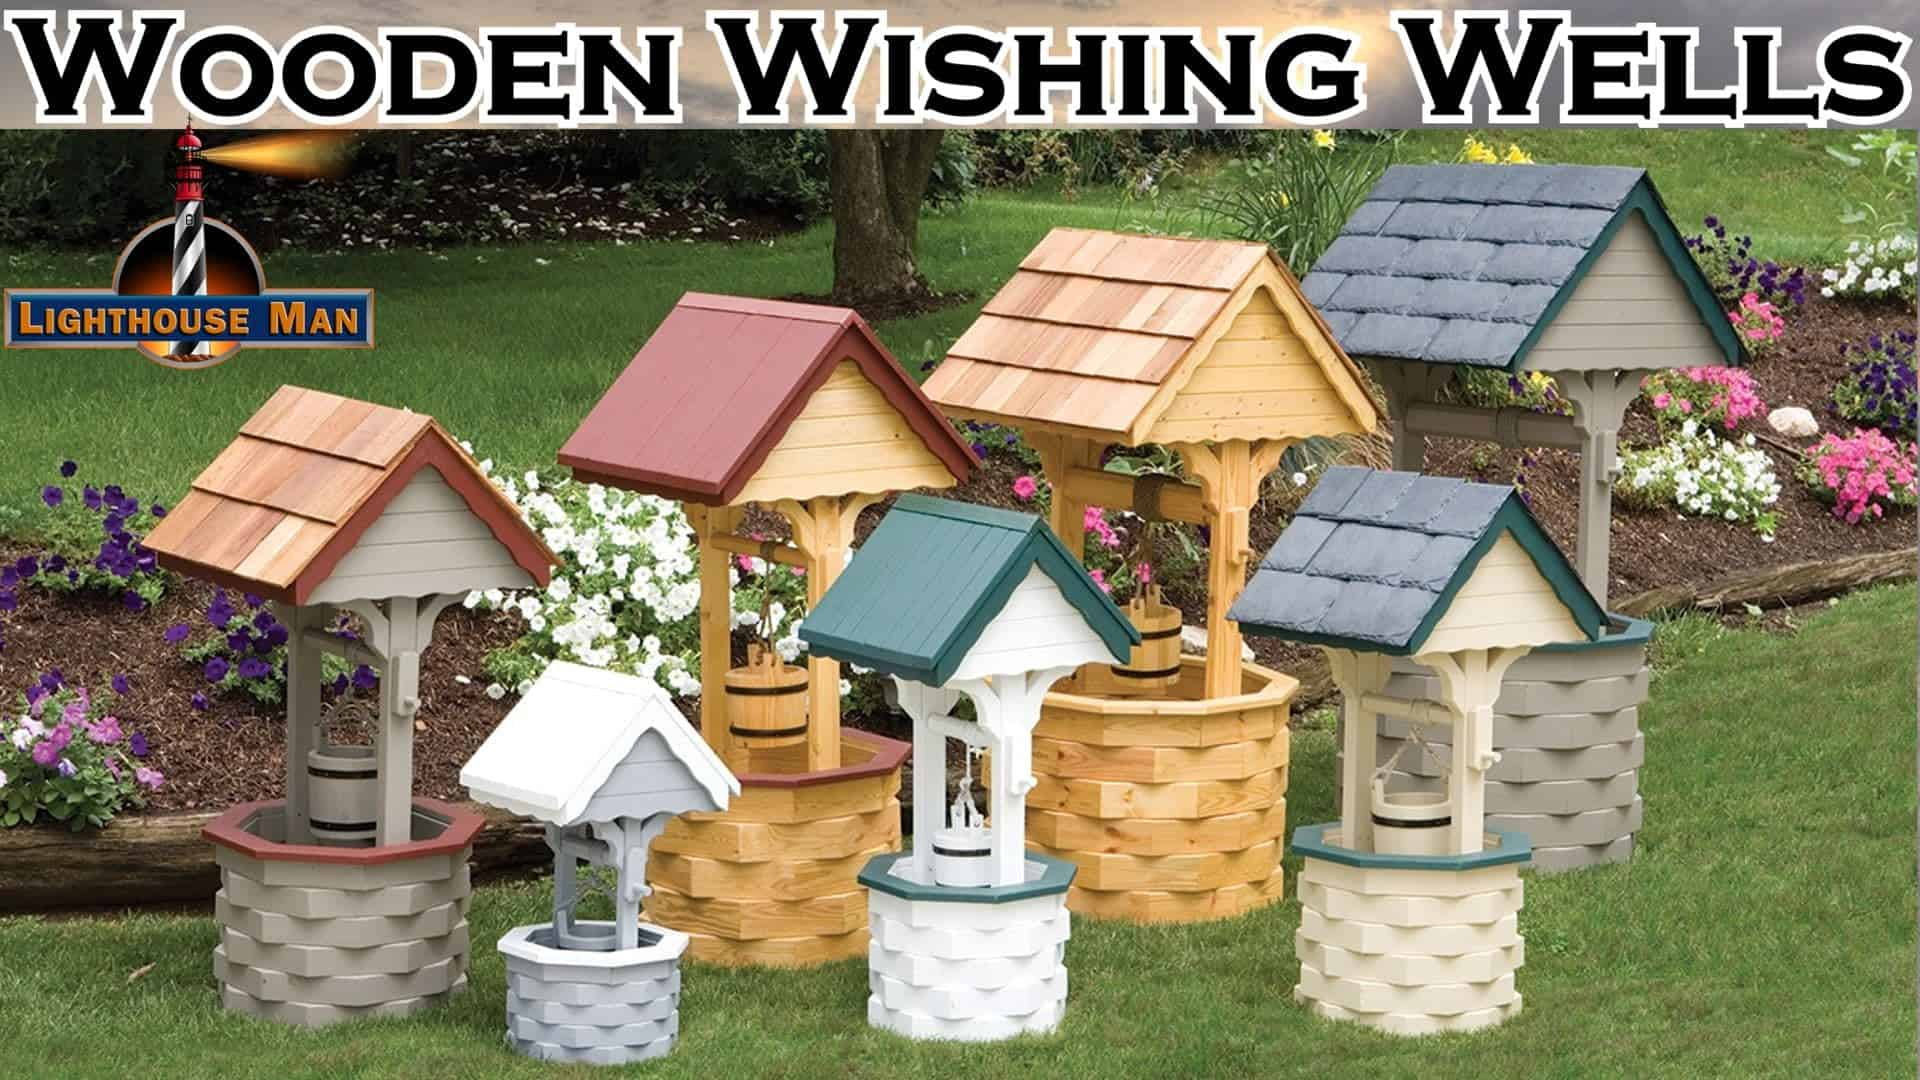 Garden designs with bridges and wishing wells landscaping ideas - Decorative Ornamental Garden Wishing Wells Wooden Wishing Wells